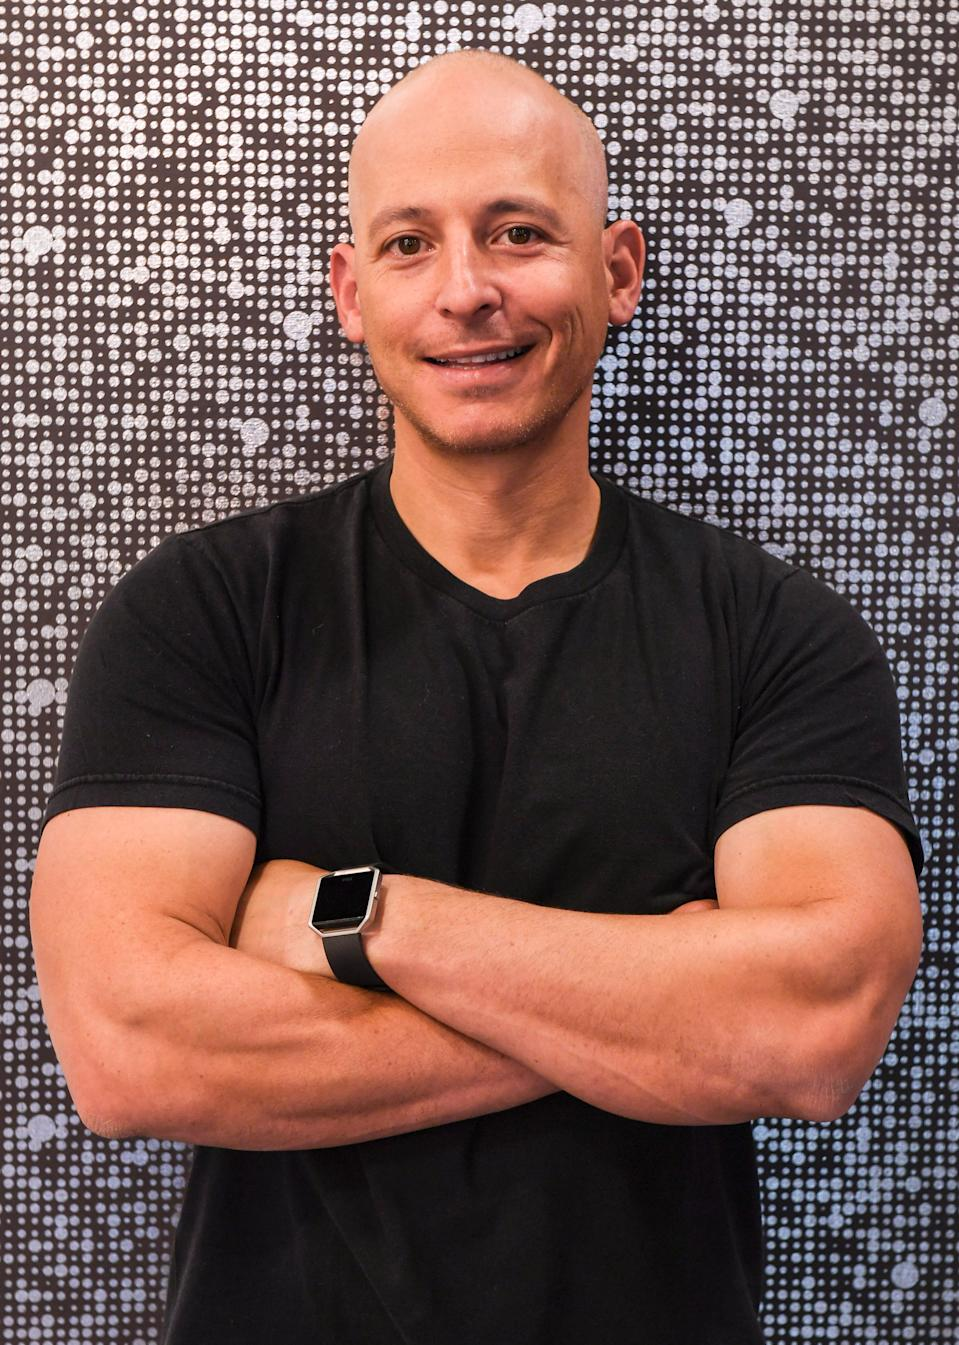 TORONTO, ONTARIO - MARCH 31:  Celebrity fitness trainer Harley Pasternak helped introduce Fitbit Alta, a slim, sleek fitness wristband that can be personalized to fit your style to Make Toronto Your Gym Event on March 31, 2016 in Toronto, Canada.  (Photo by George Pimentel/Getty Images for Fitbit)